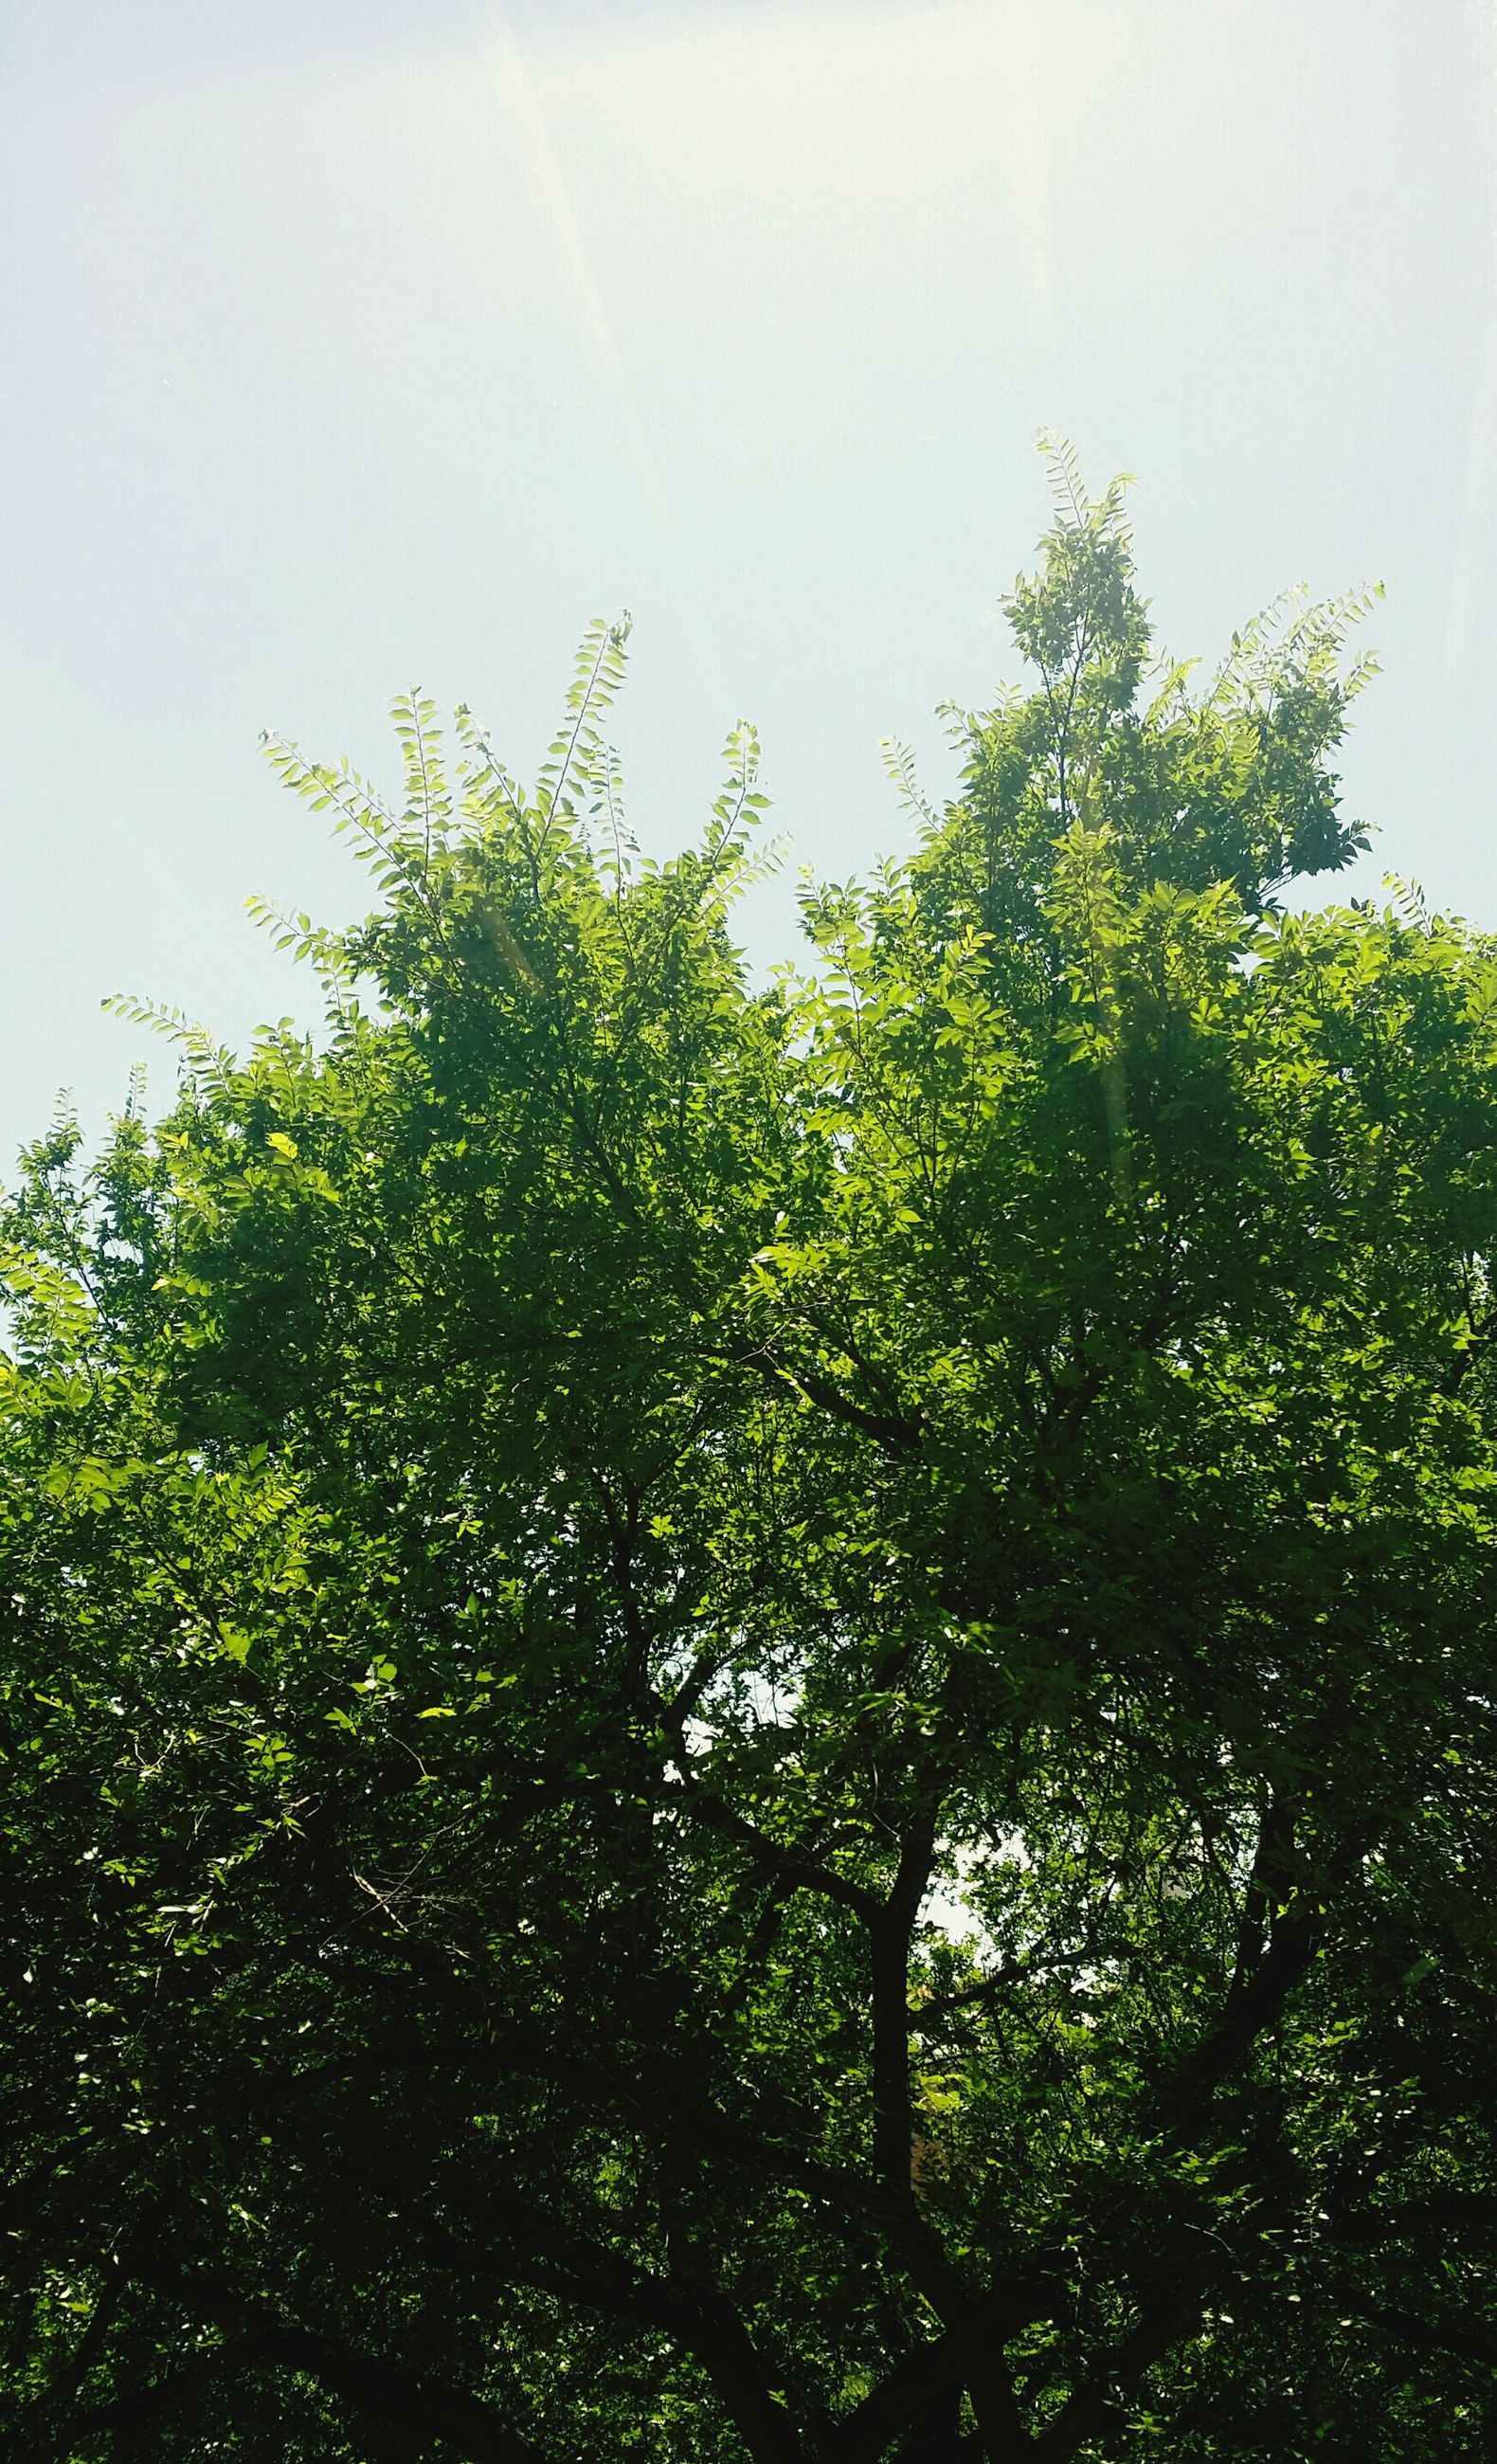 tree, growth, green color, low angle view, nature, clear sky, tranquility, beauty in nature, branch, lush foliage, sky, green, leaf, tranquil scene, day, scenics, outdoors, no people, growing, plant